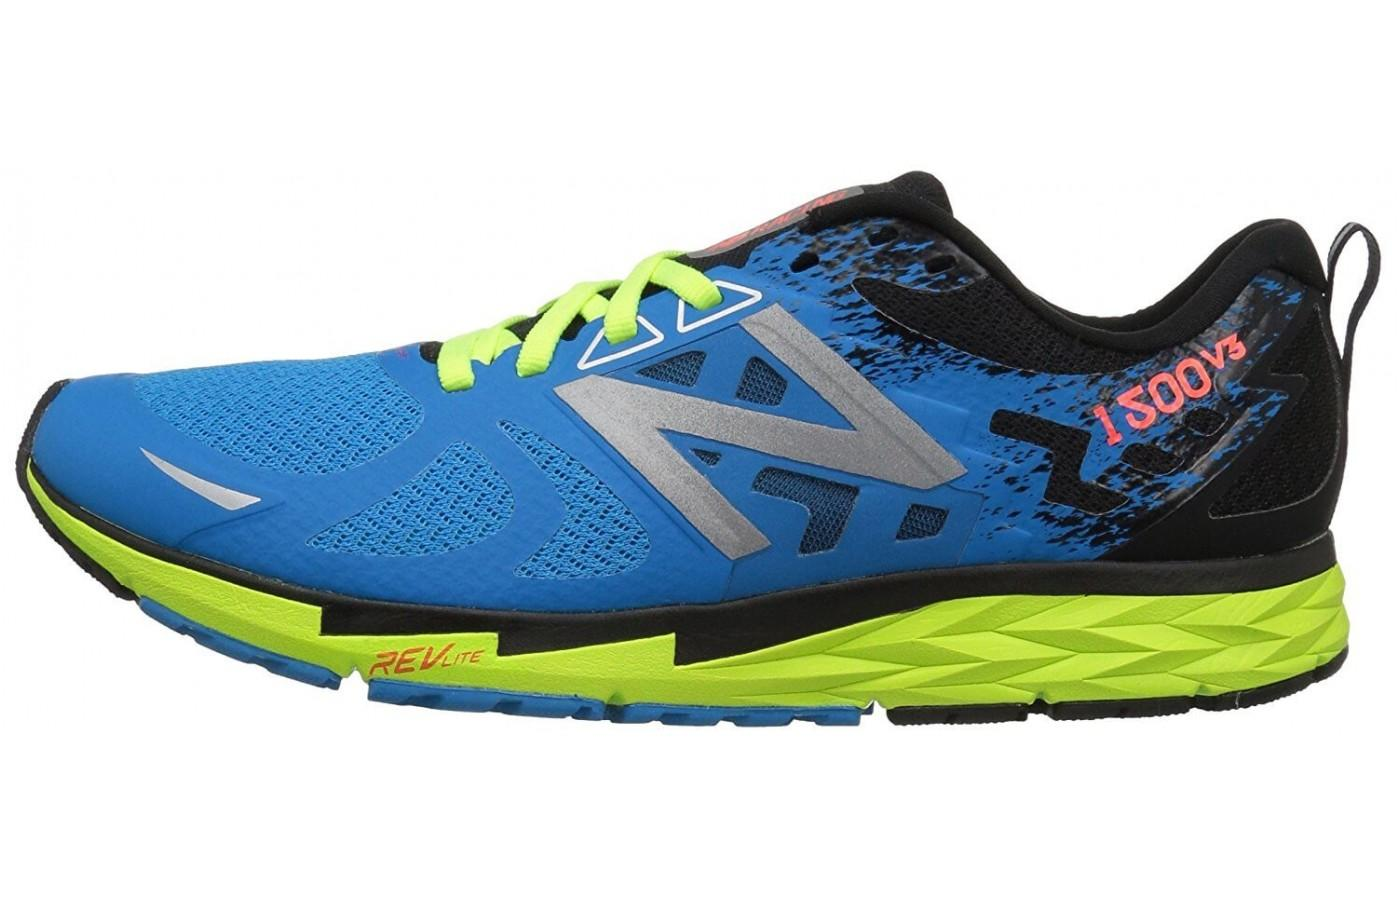 The most polarizing feature of any New Balance shoes is its style.